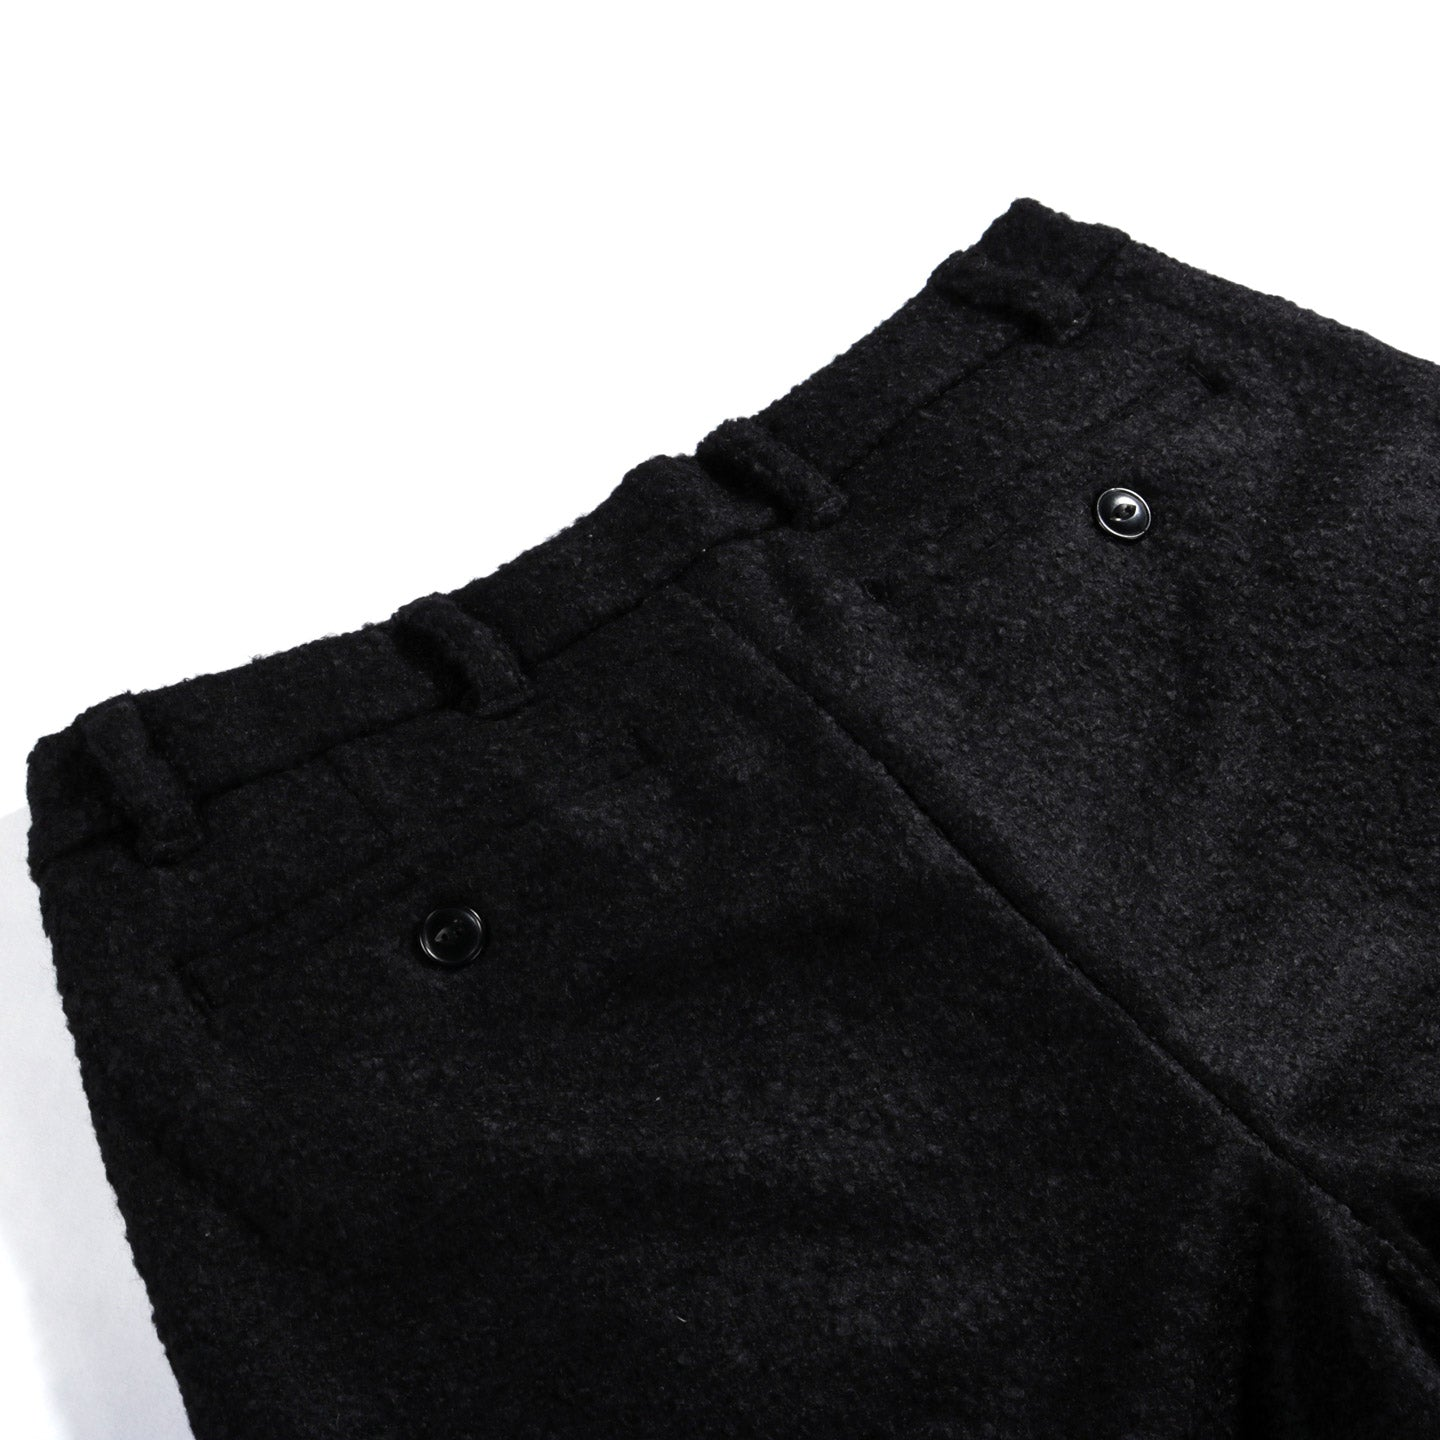 HOUSE OF ST. CLAIR SINGLE PLEAT TROUSER BLACK BOILED WOOL